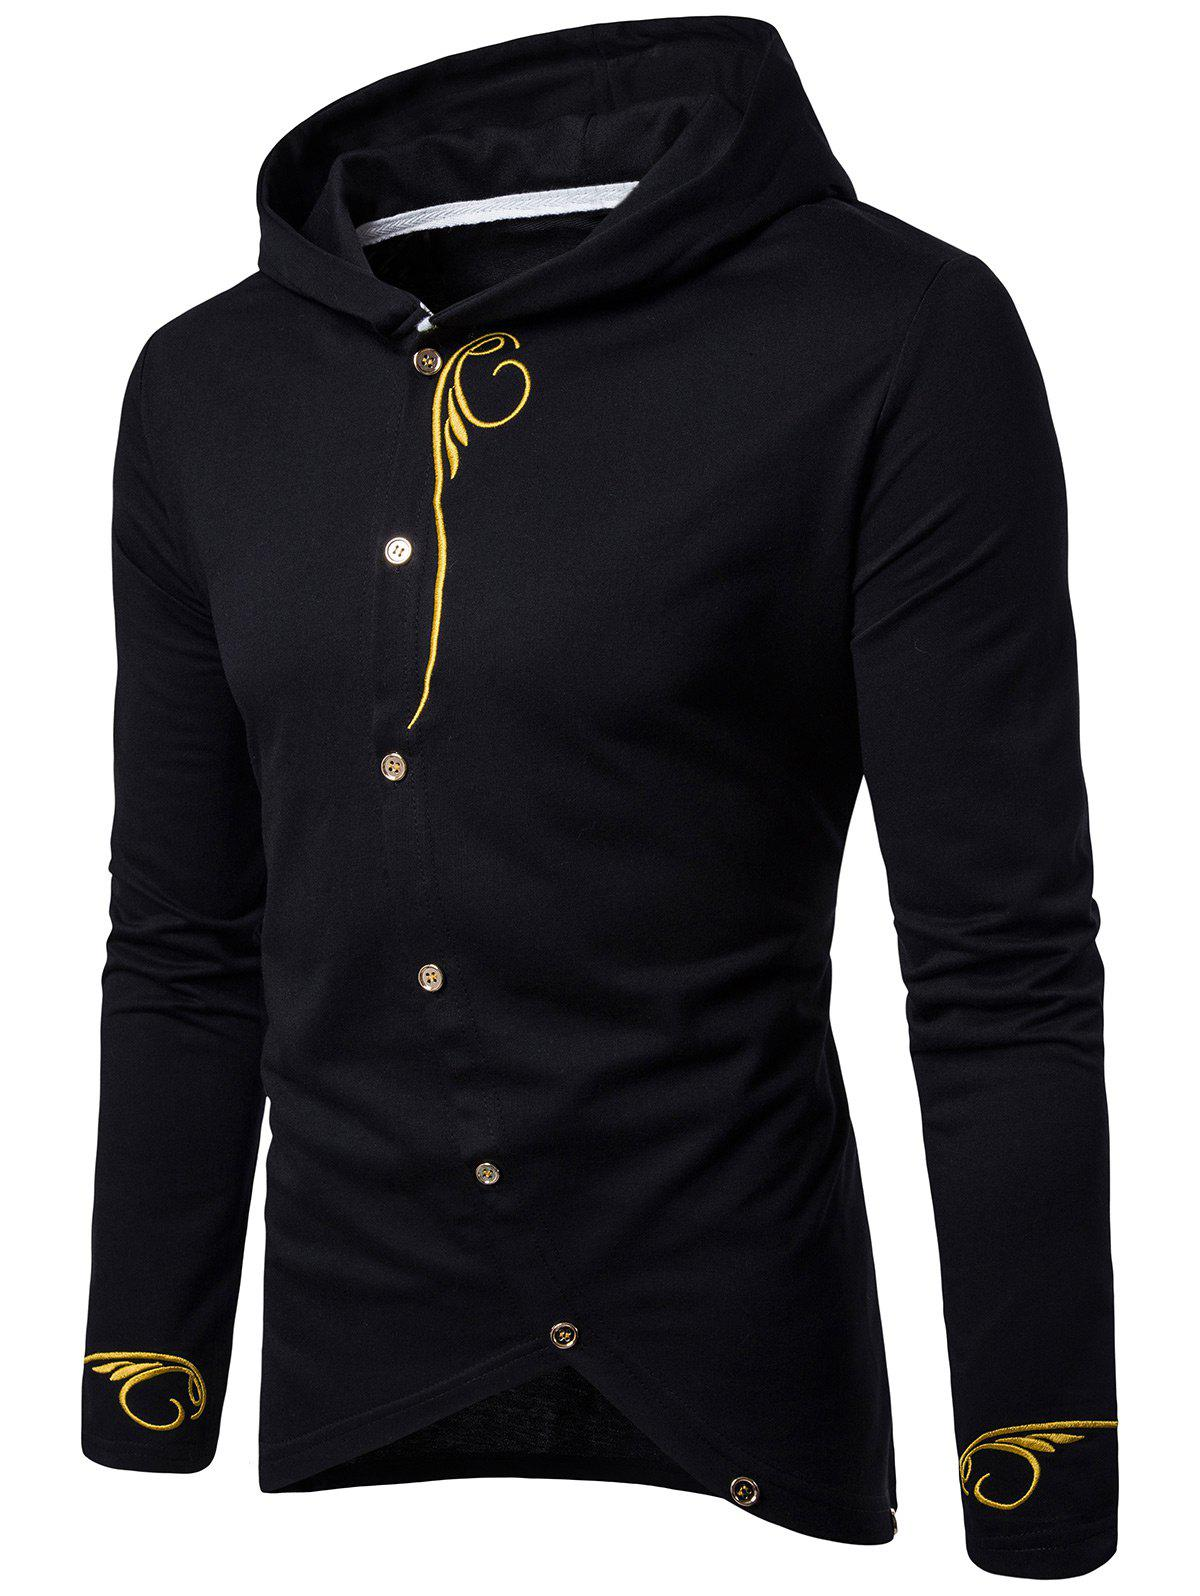 Design t shirt long sleeve - Oblique Buttons Design Embroidered Long Sleeve T Shirt Black M